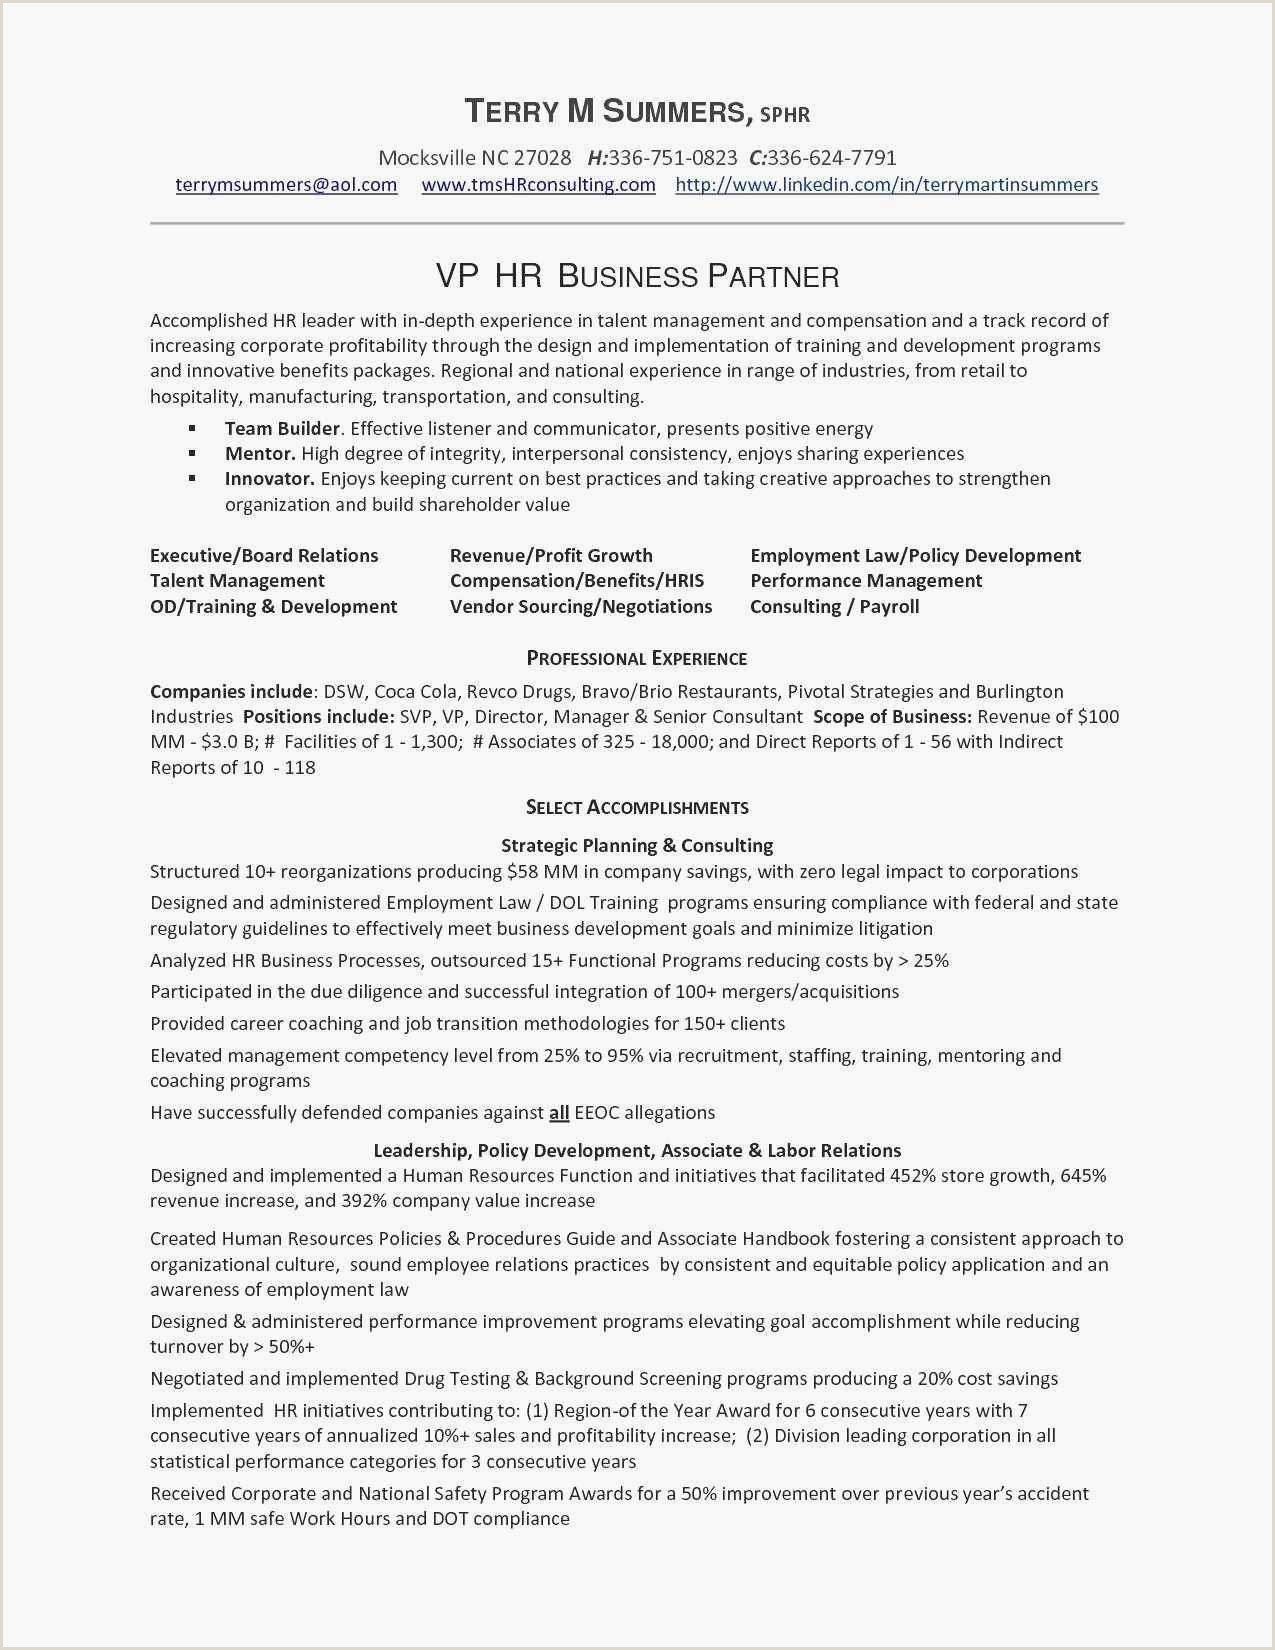 Salesman Cover Letter Example Best Inside Sales Cover Letter Examples Livecareer Mla format